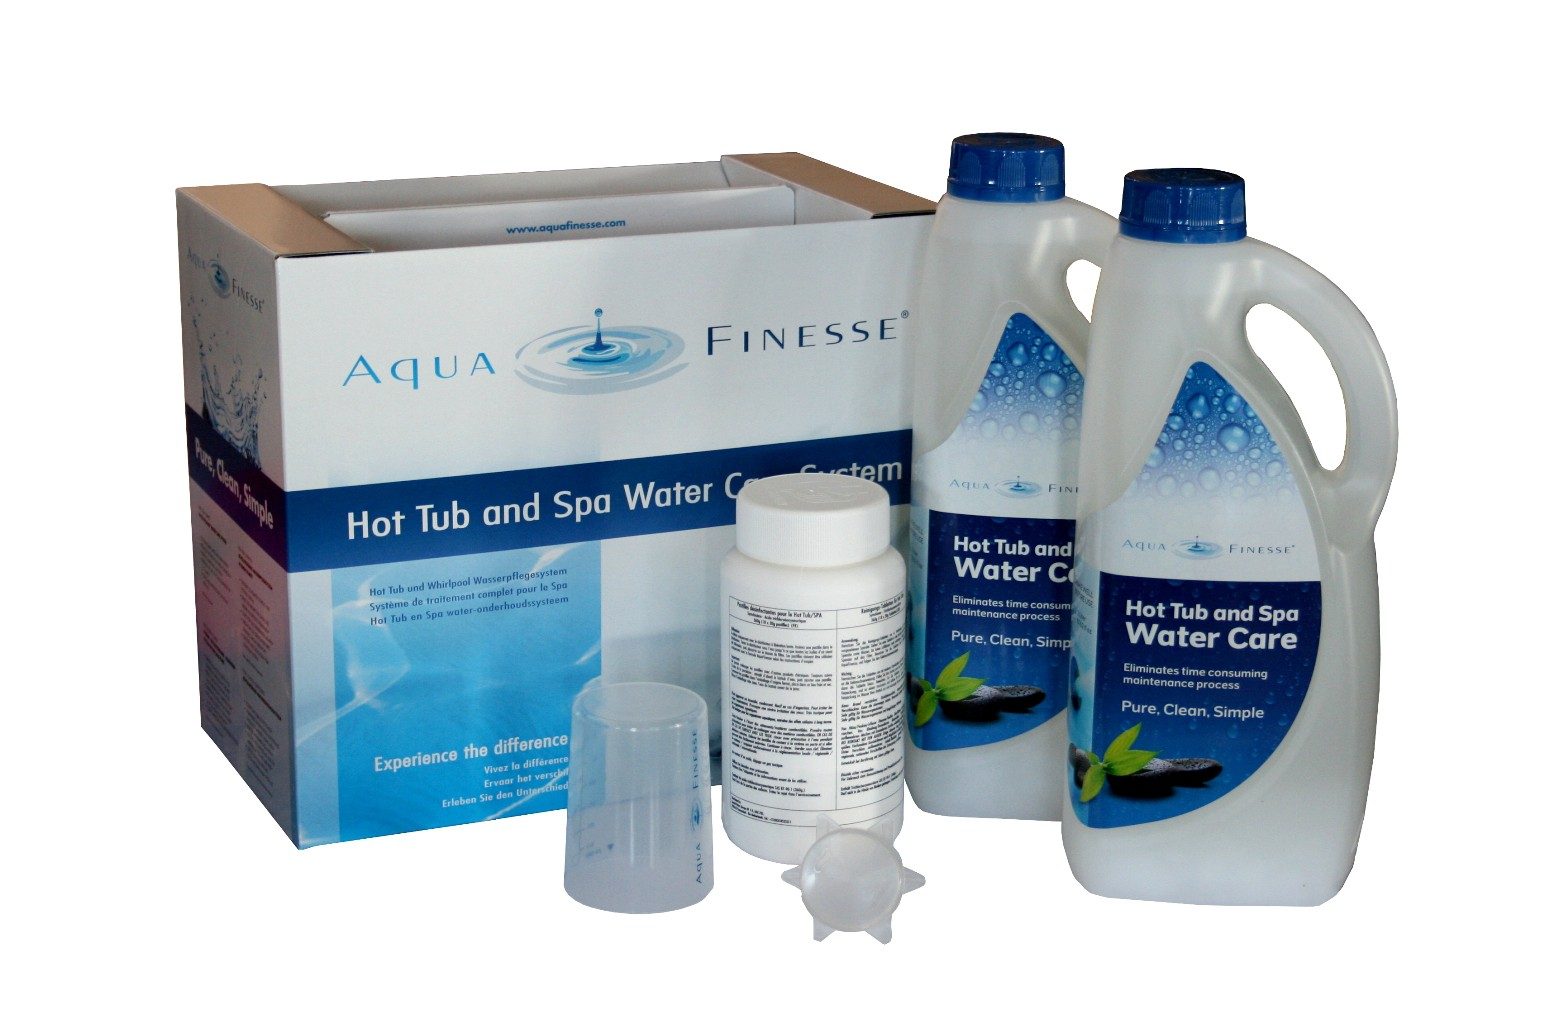 Chlortabletten Pool Ebay Aqua Finesse Hot Tub Box Whirl Pool Wasser Pflege Set 2x2l